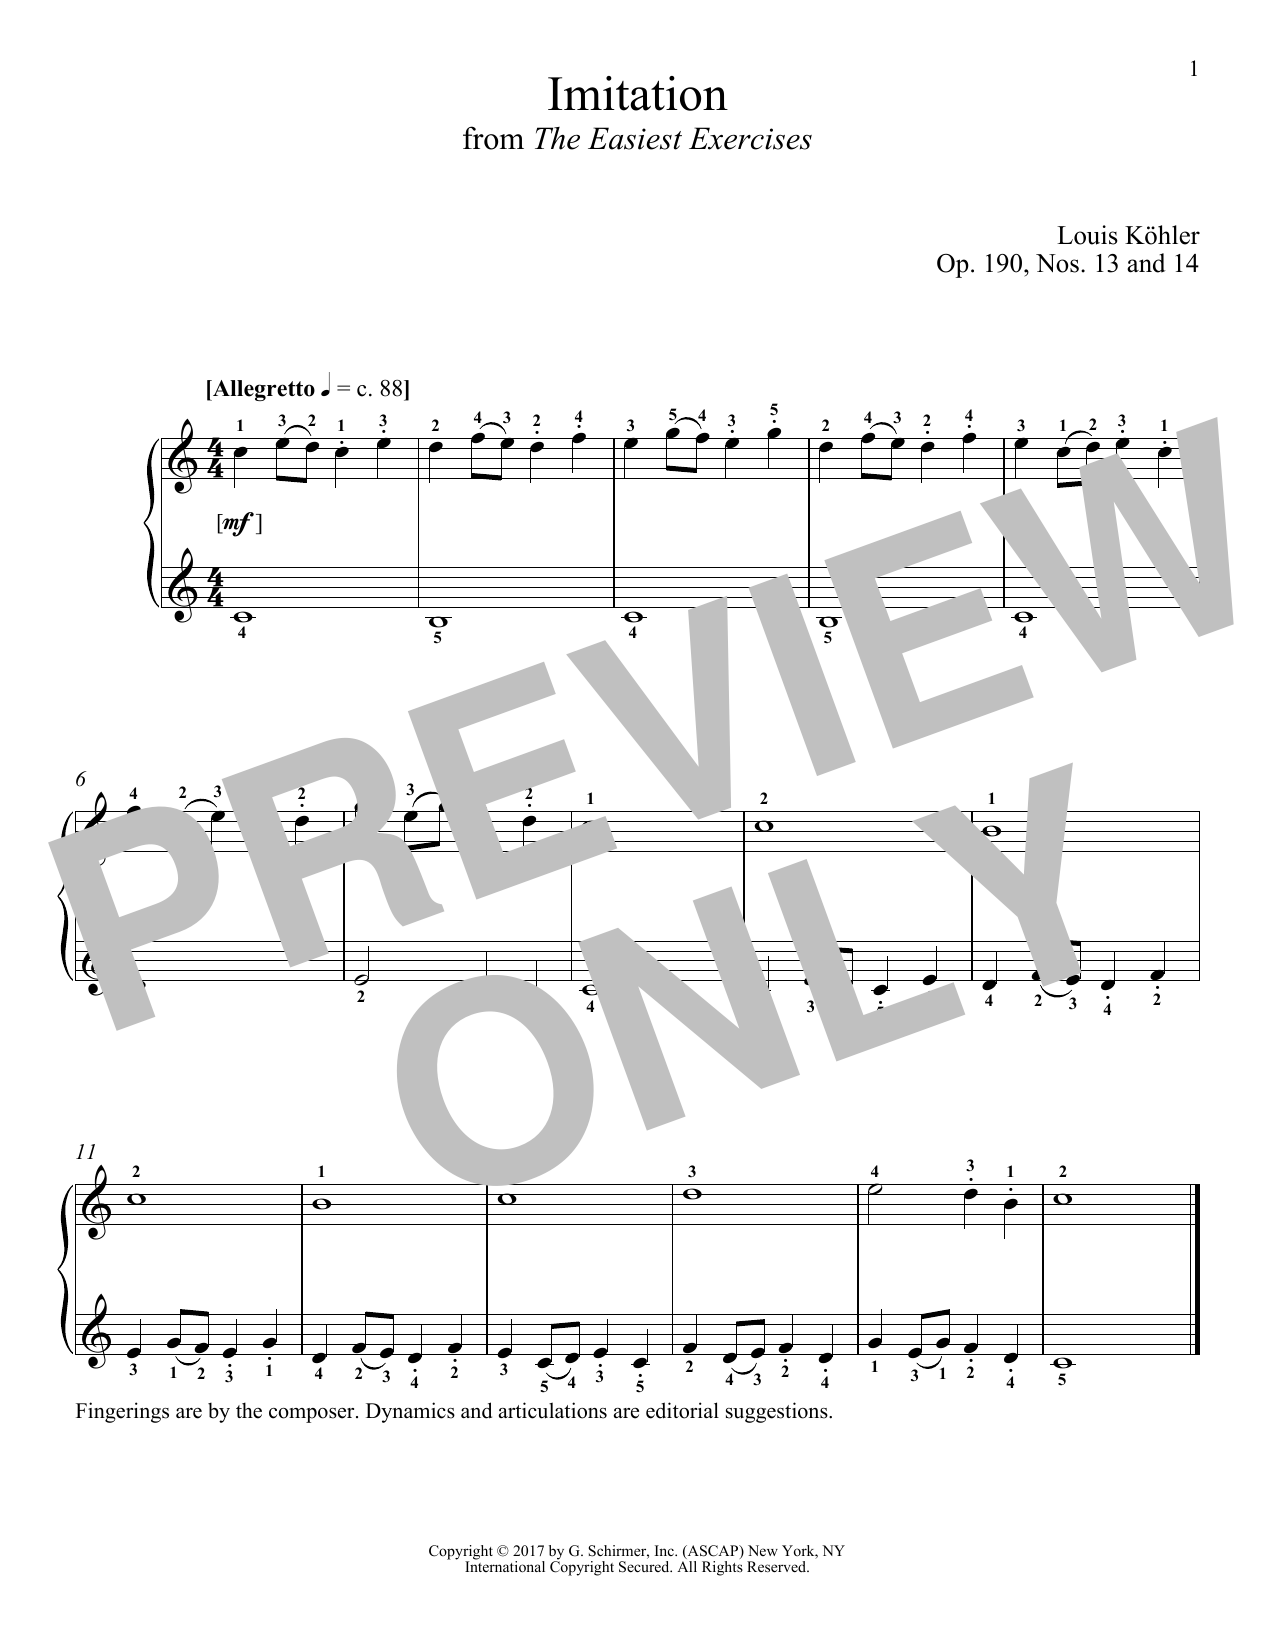 Imitation, Op. 190, Nos. 13 and 14 (Piano Solo)